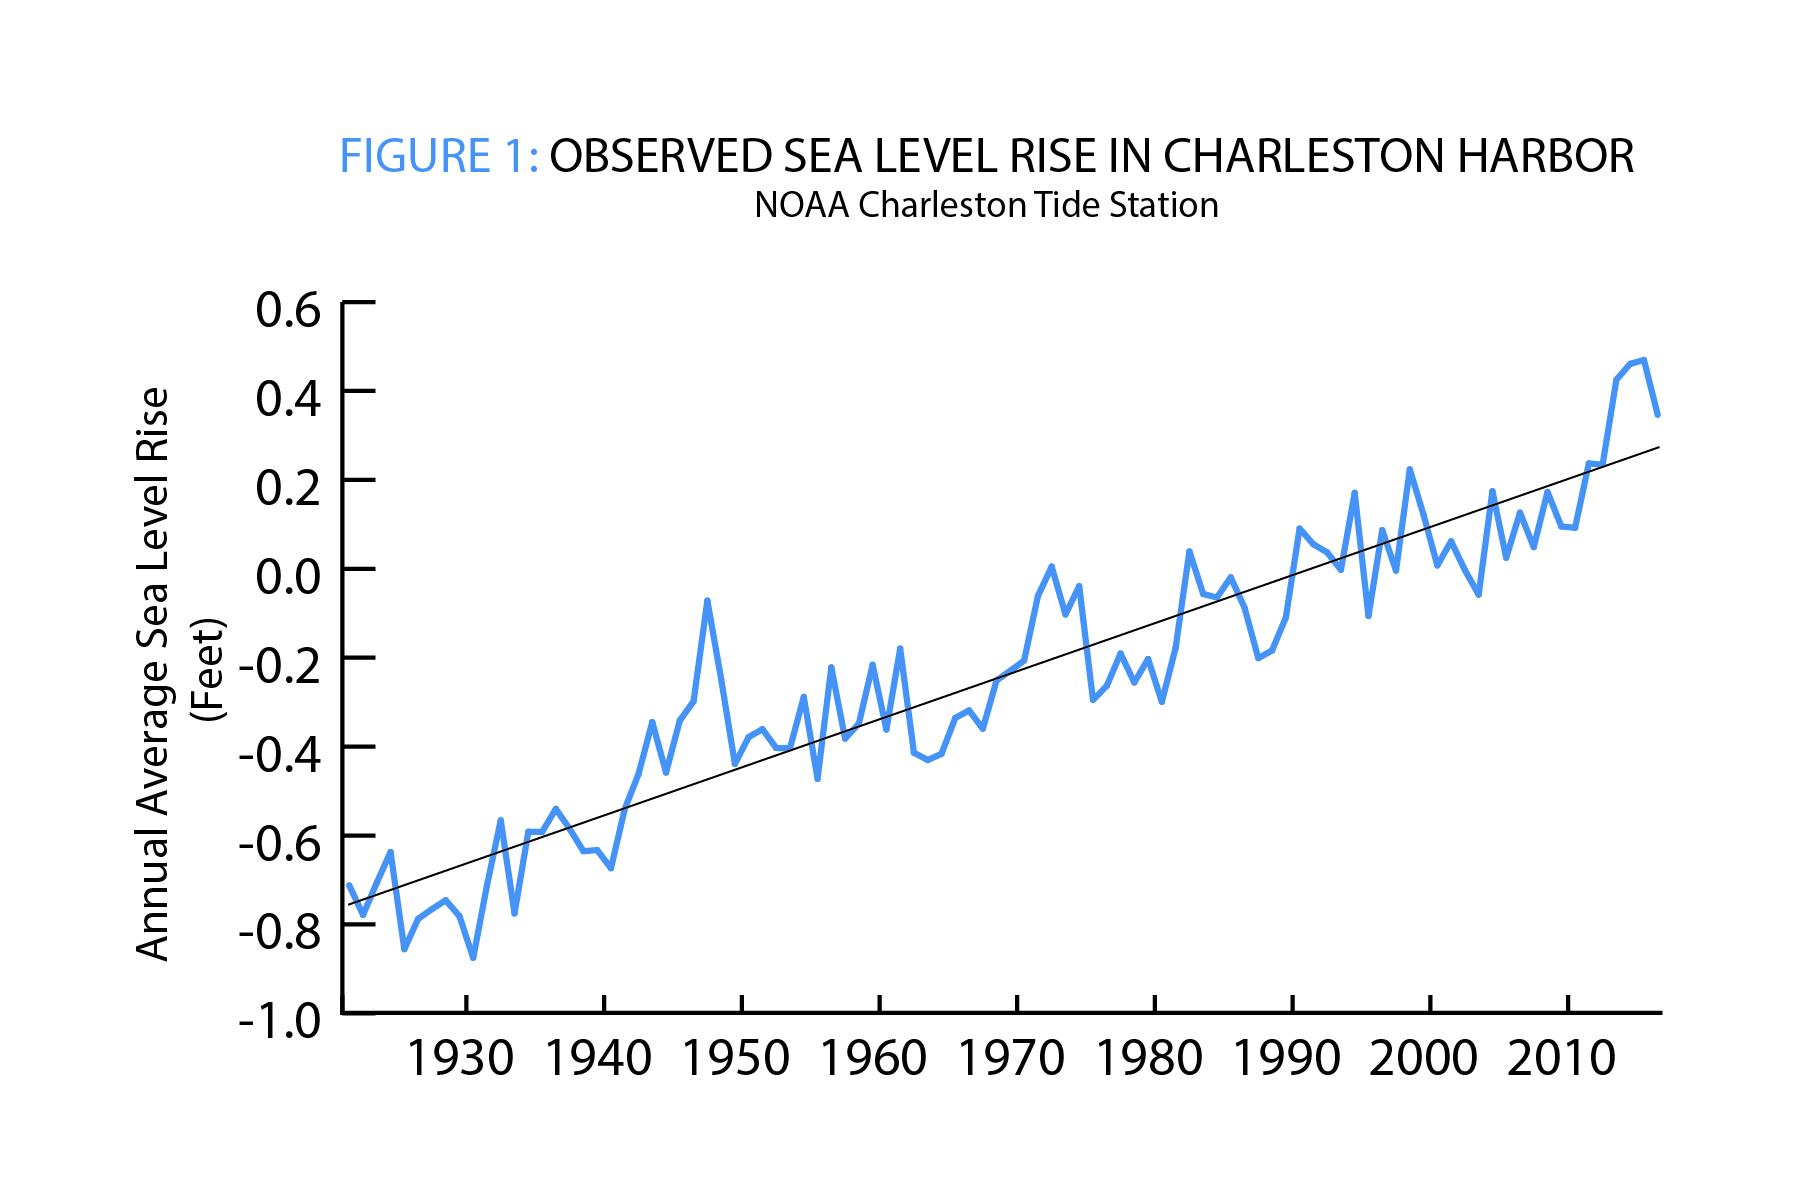 Figure 1 Observed SLR in Charleston Harbor NOAA Tide Gauge